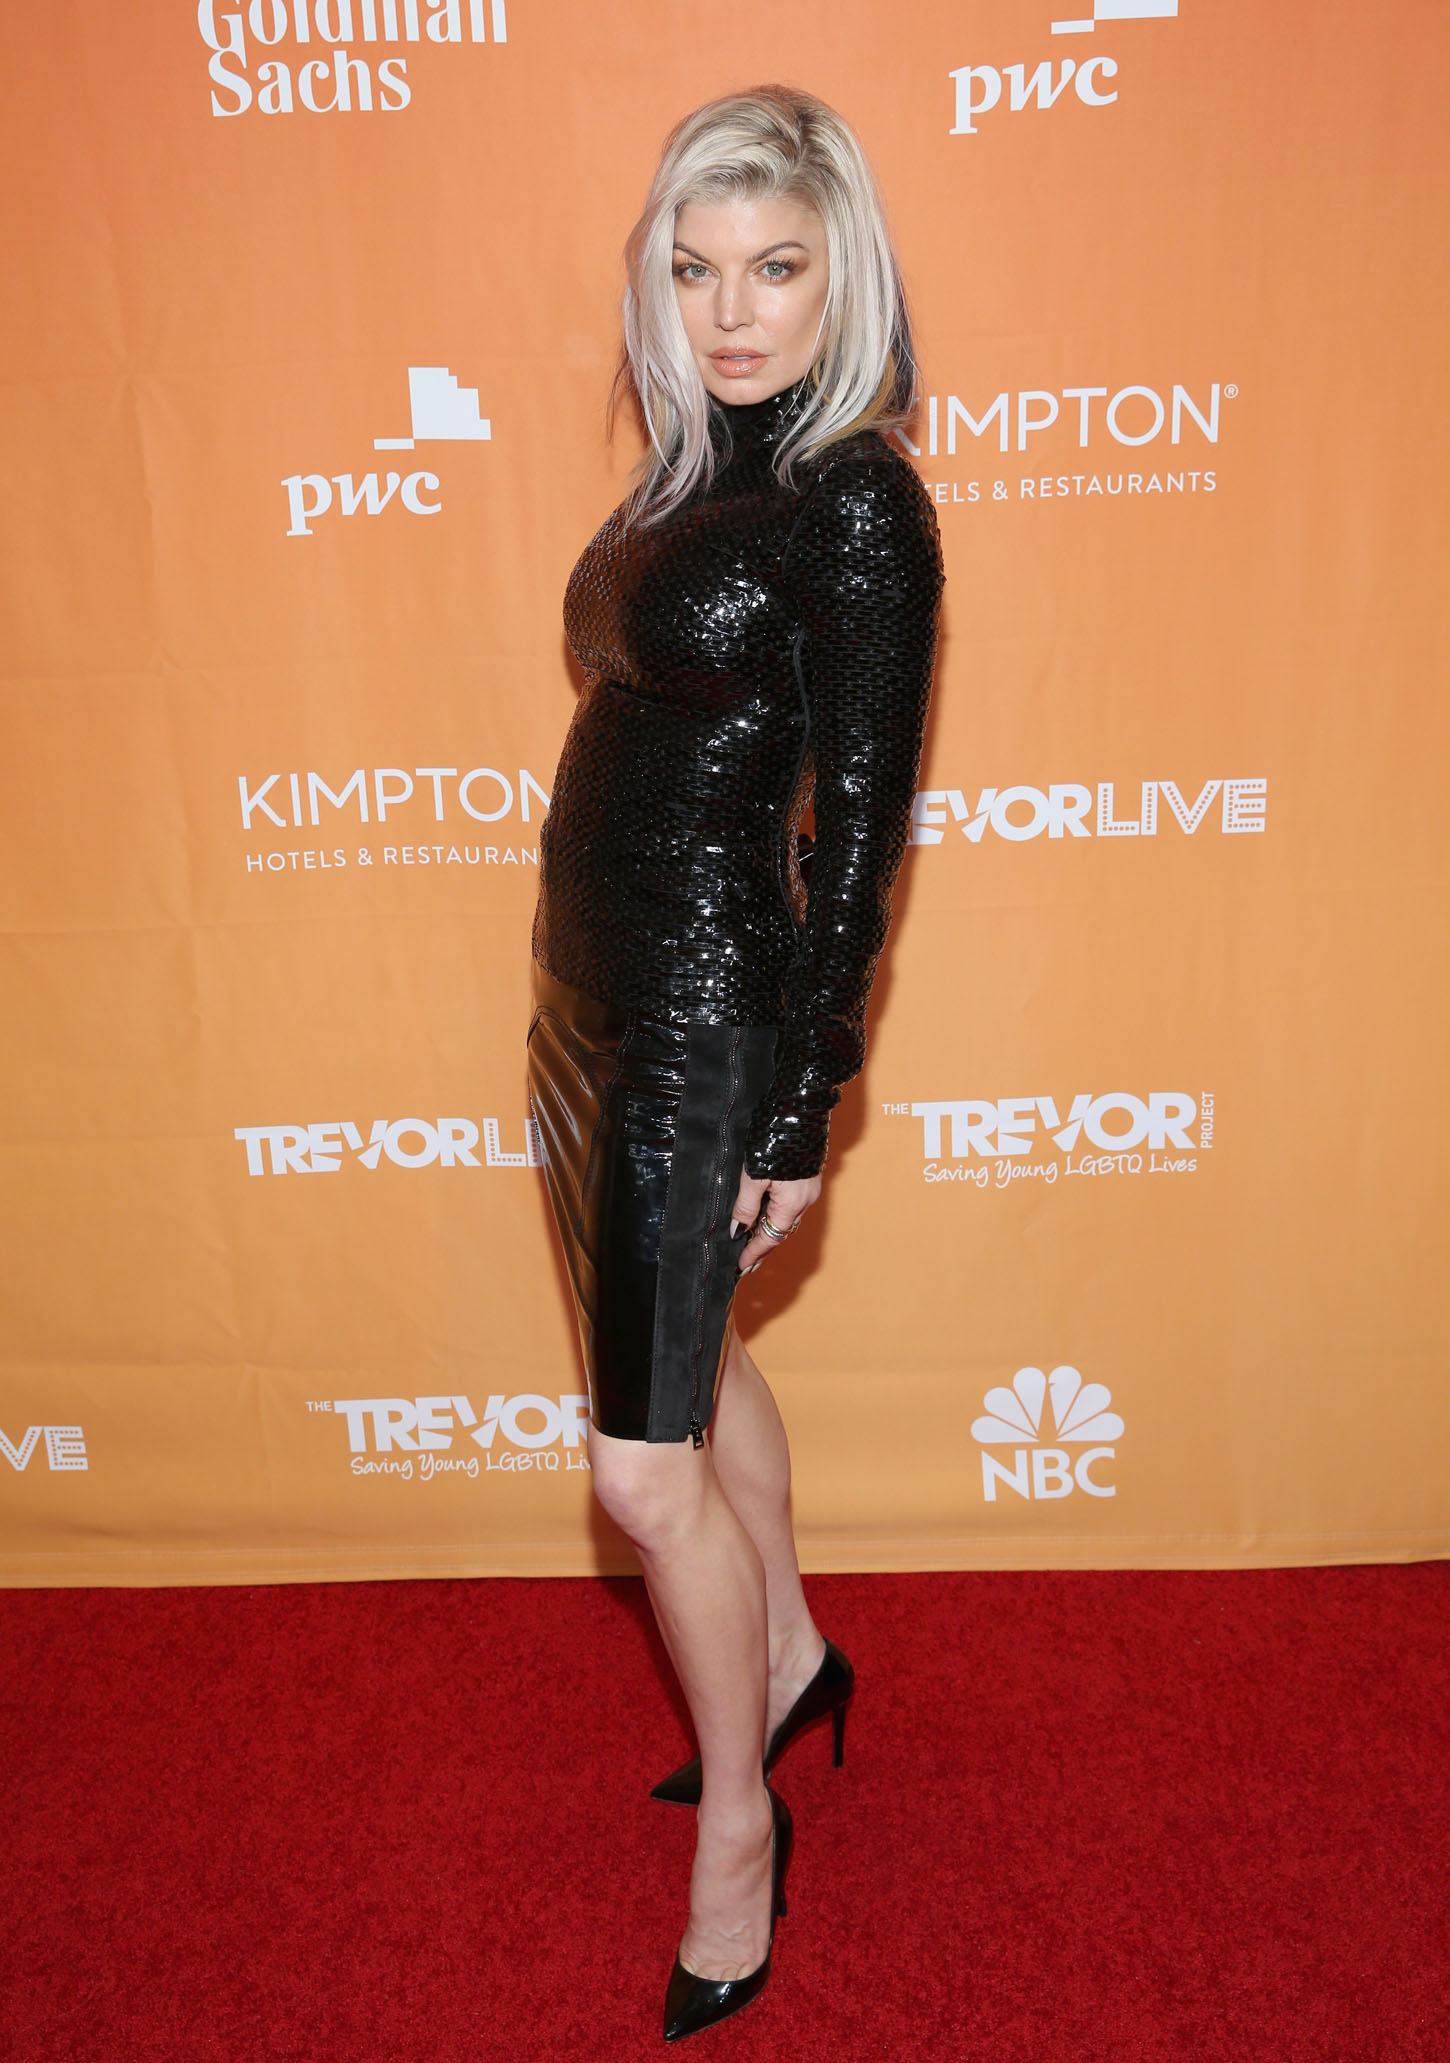 BEVERLY HILLS, CA - DECEMBER 03:  Fergie attends The Trevor Project's 2017 TrevorLIVE LA Gala at The Beverly Hilton Hotel on December 3, 2017 in Beverly Hills, California.  (Photo by Phillip Faraone/Getty Images for The Trevor Project)